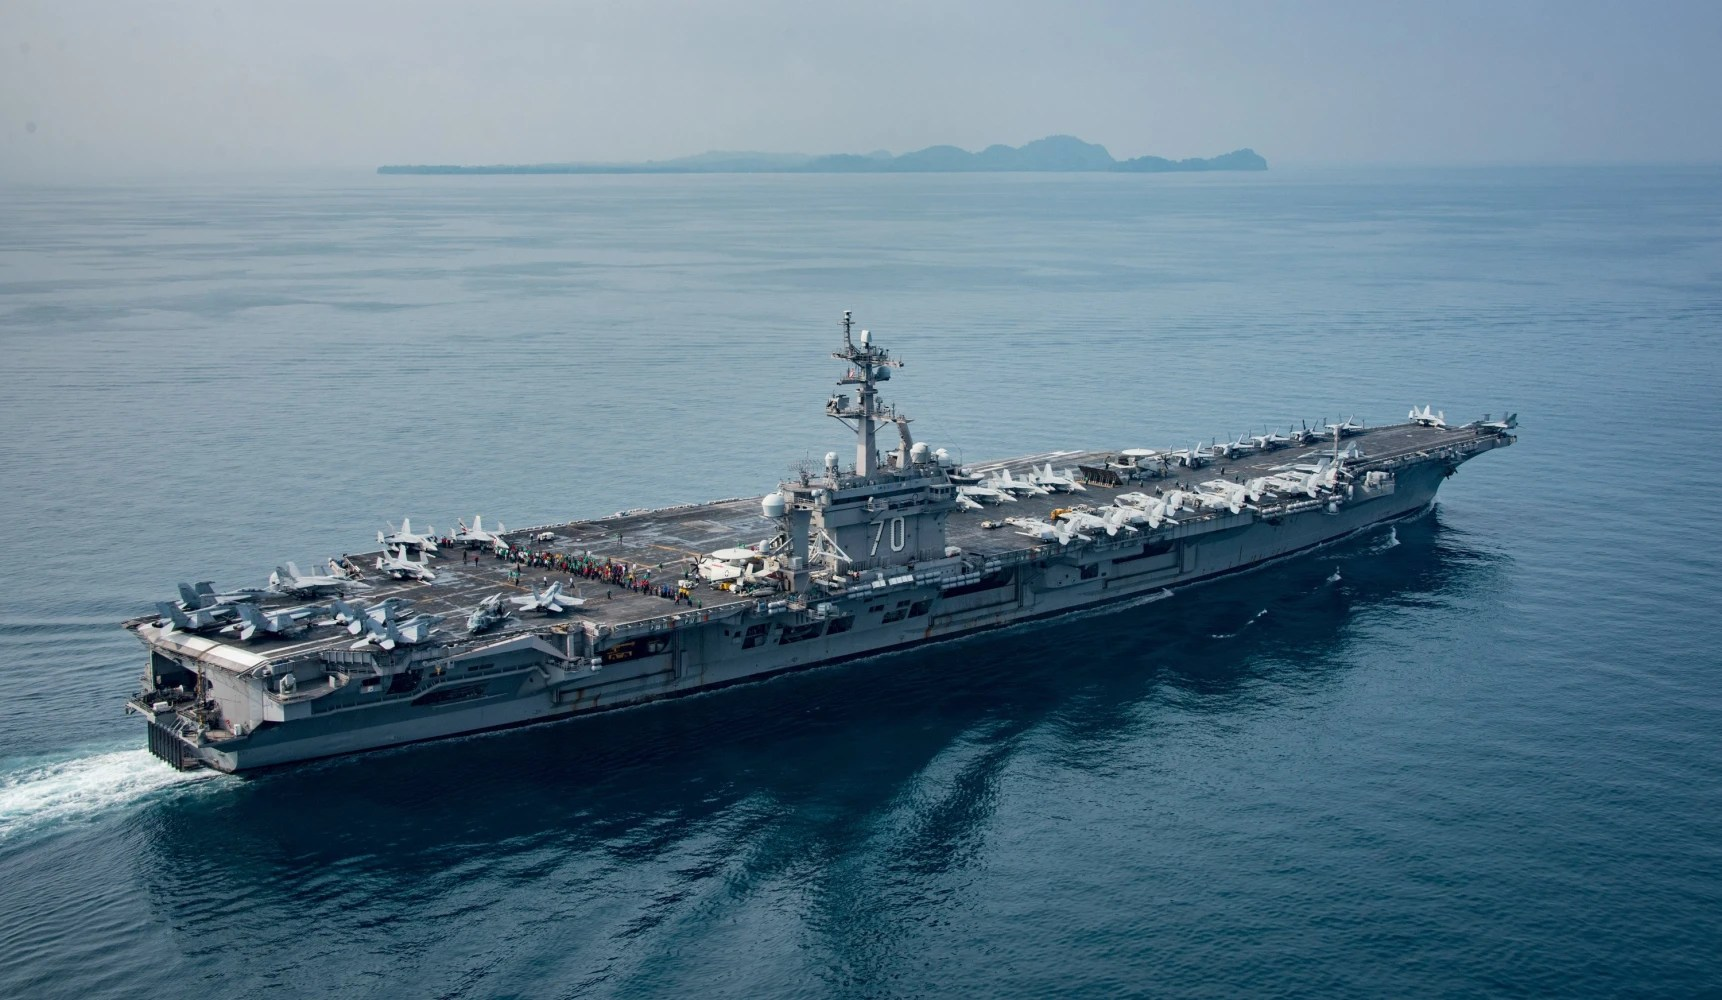 North Korea threatens to sink USA aircraft carrier USS Carl Vinson